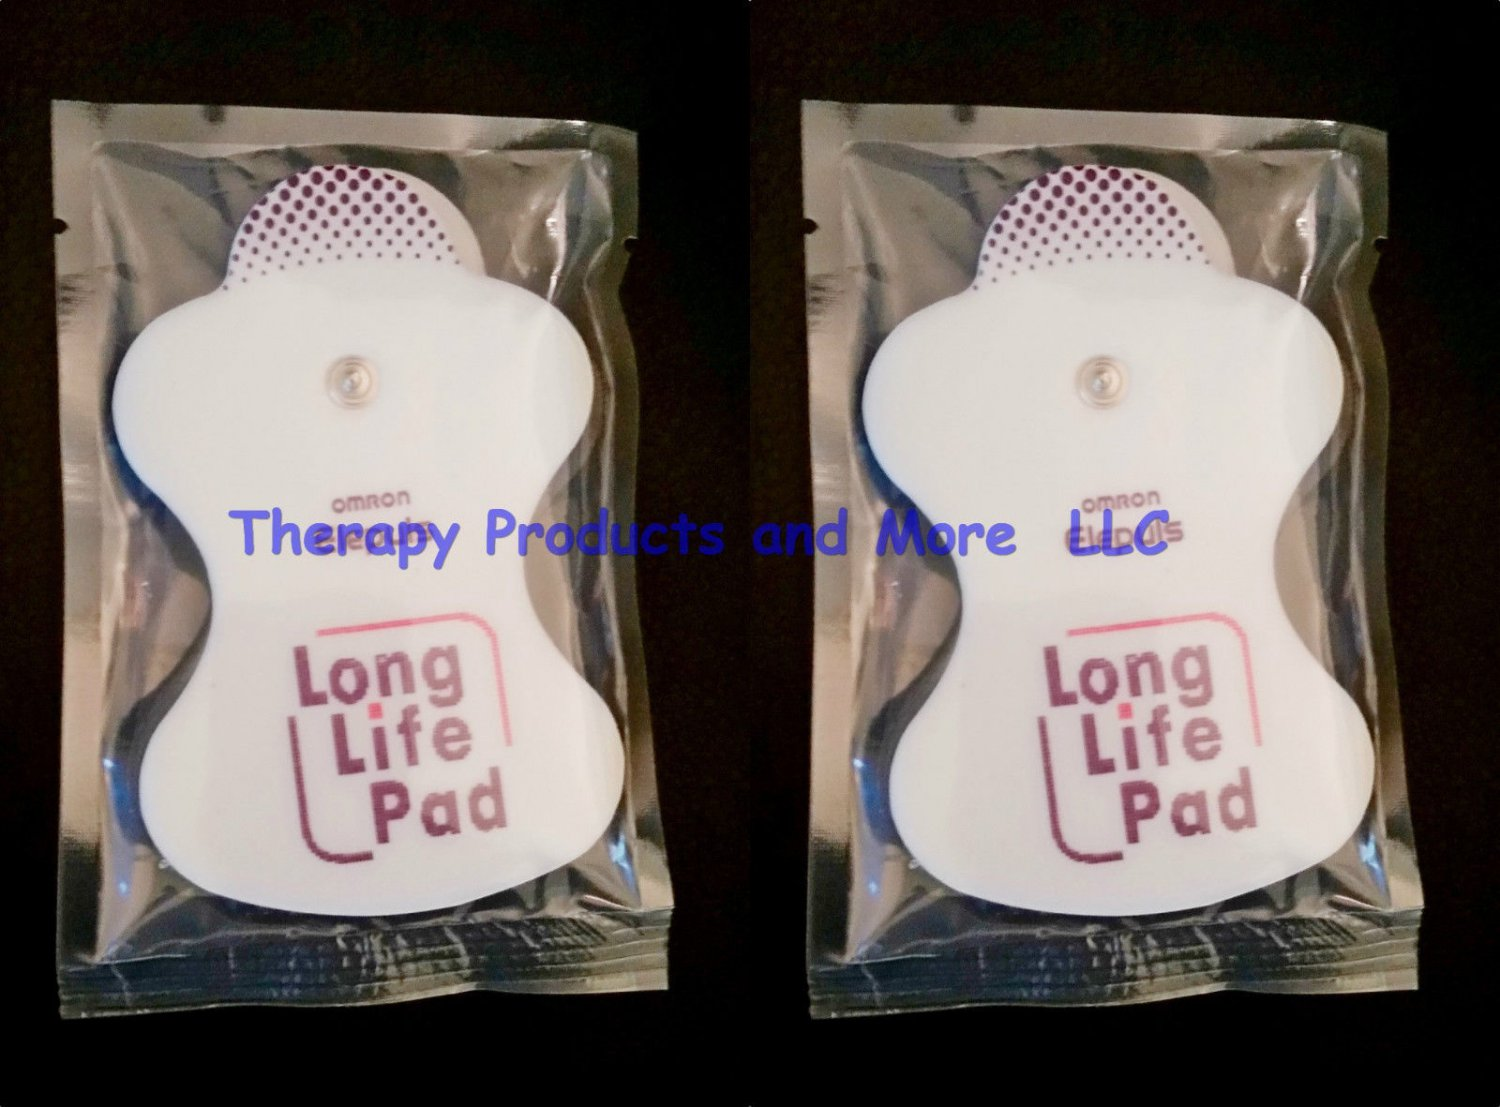 4 Electrode Replacement Pads for OMRON HV-F127 HV-F128 HV-F158 PM3030, 3031 3032